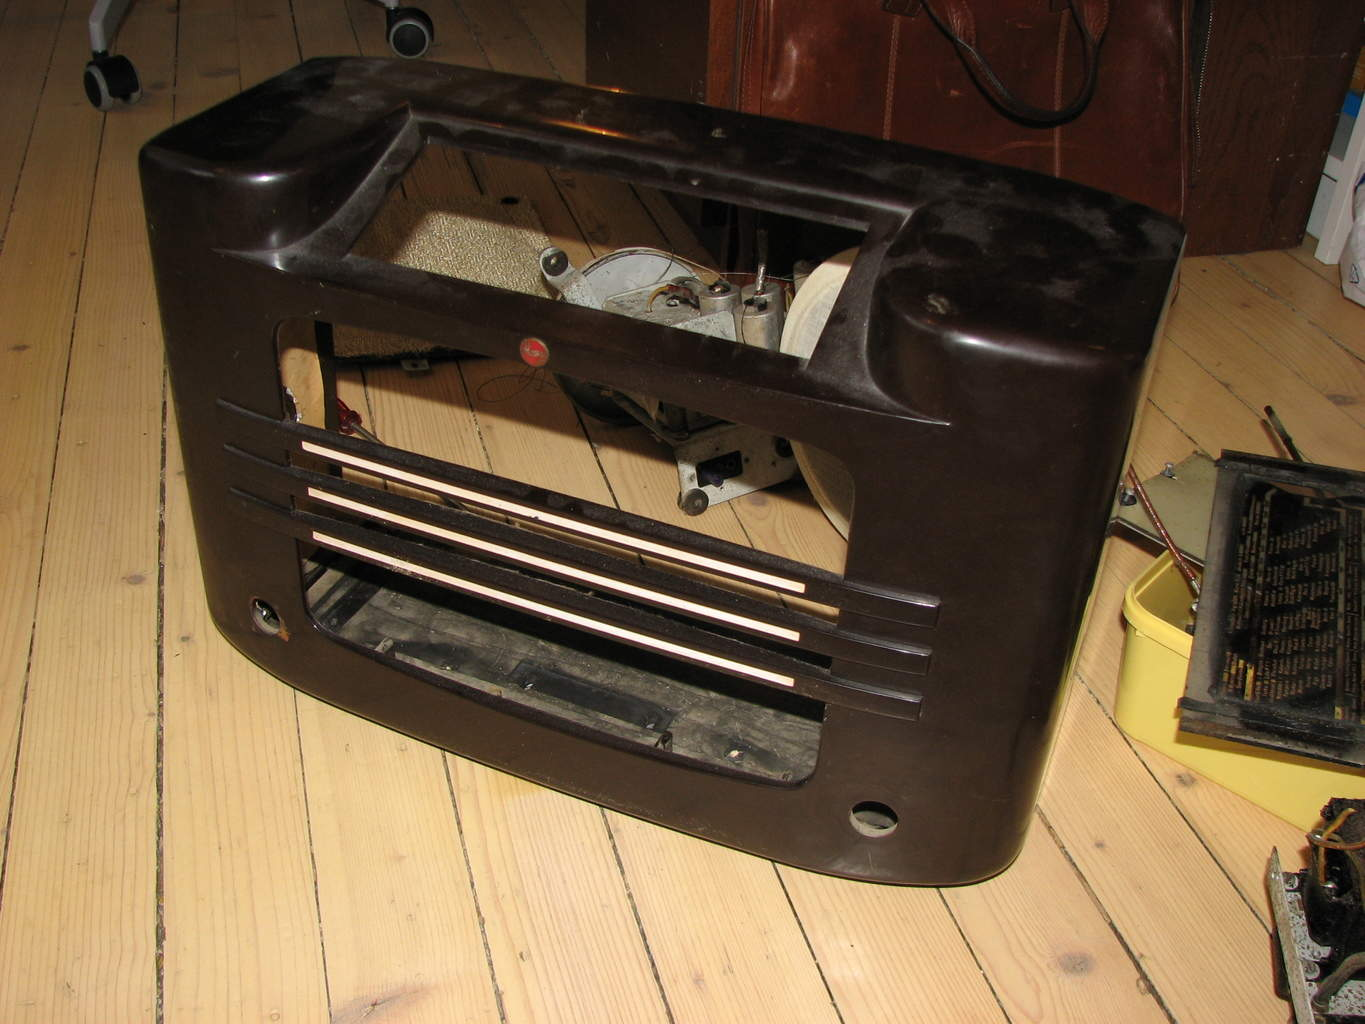 Electronics Project Old Radio Hacked Into An Iphone Dock To Make A Functional Circuit On Paper Hacks Mods Circuitry 1937 Philips Stripped